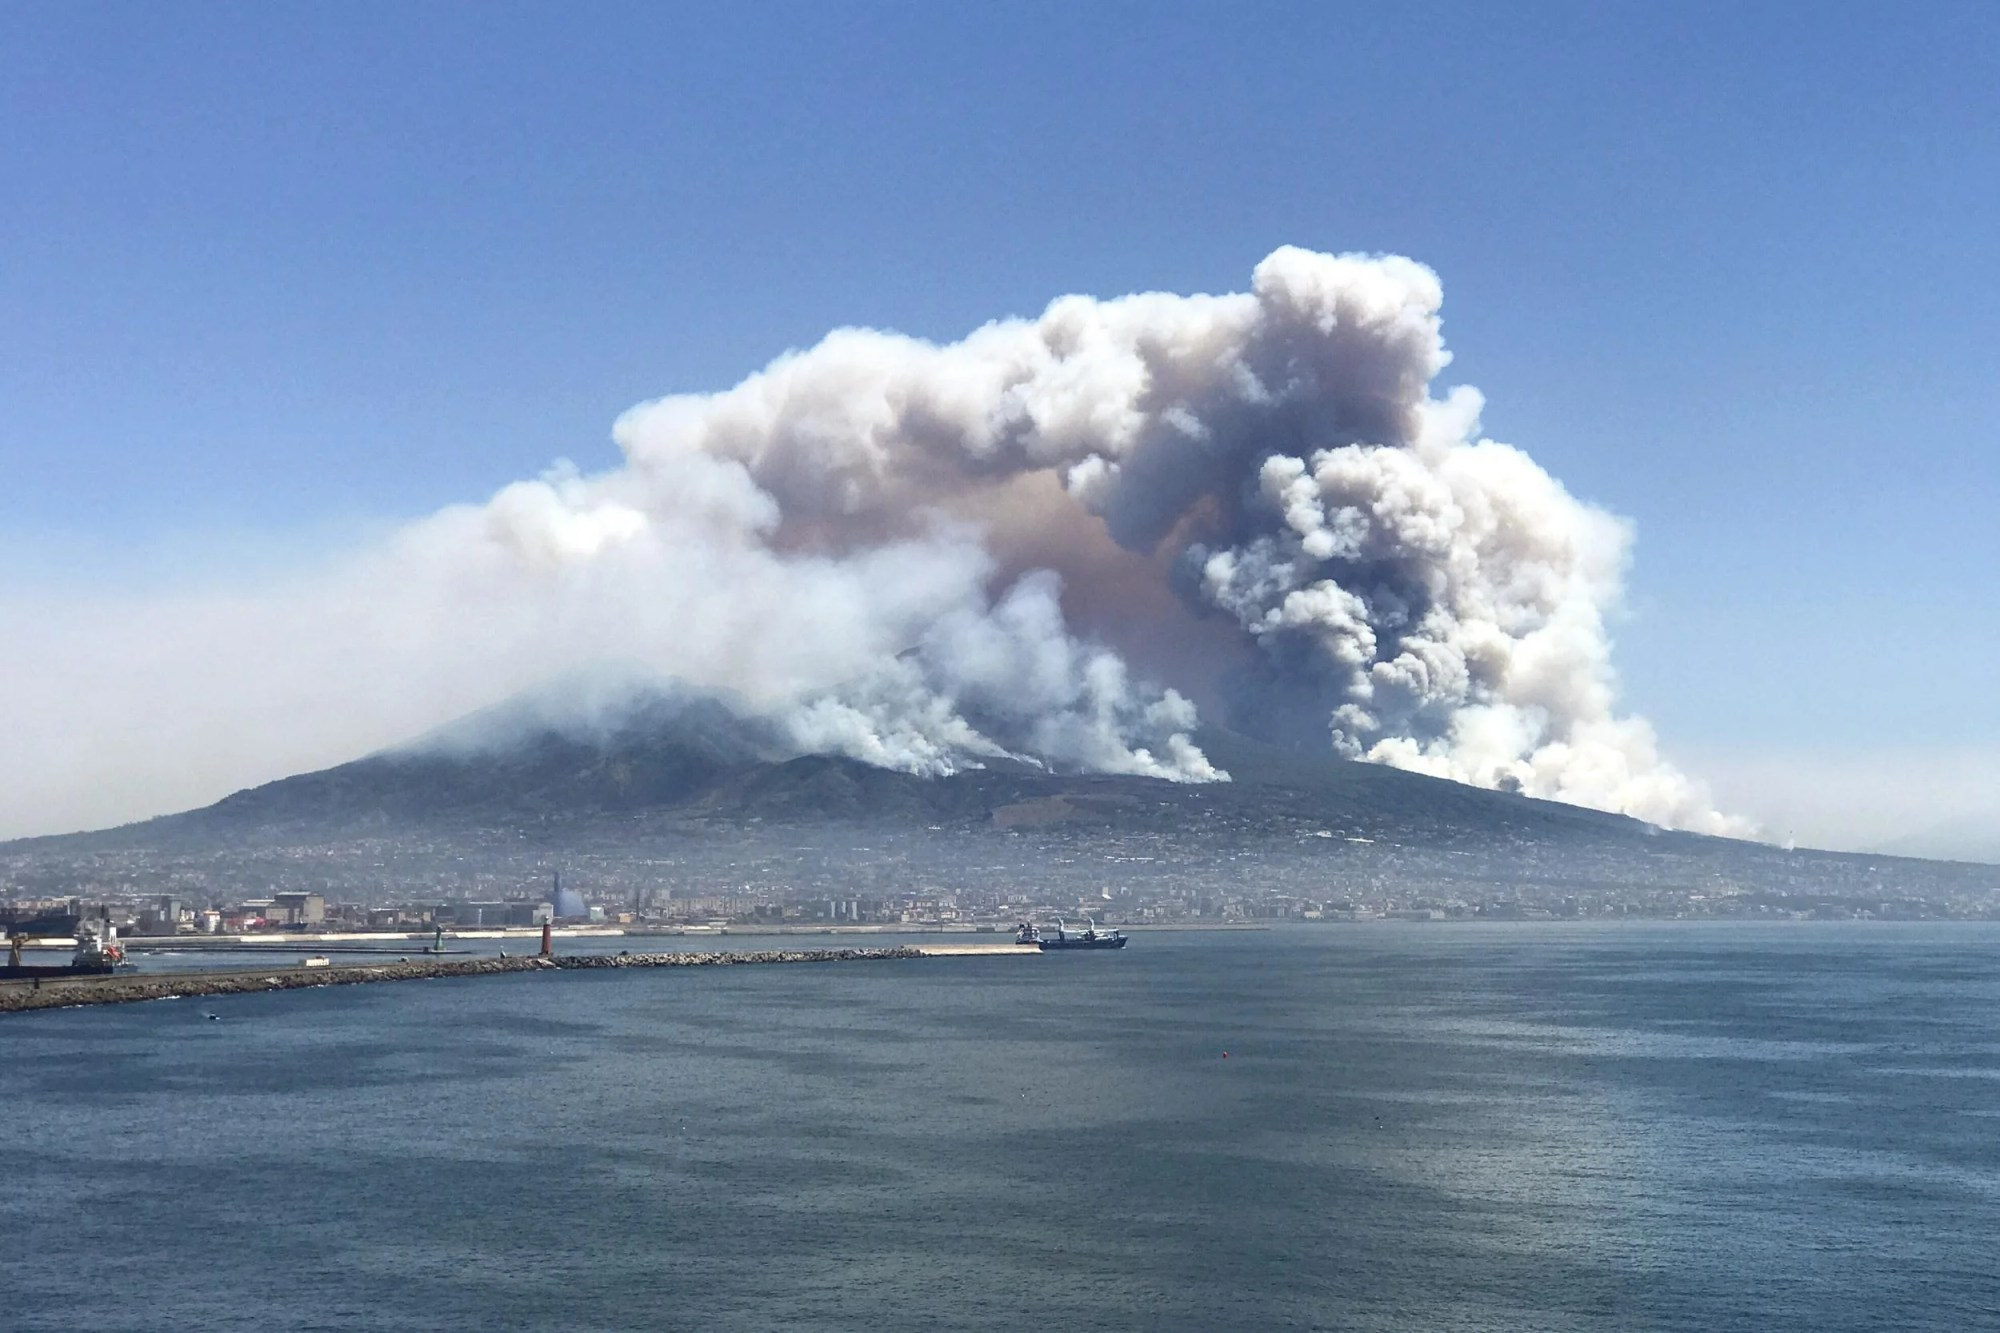 hight resolution of don t let the mount vesuvius fire put you off visiting naples